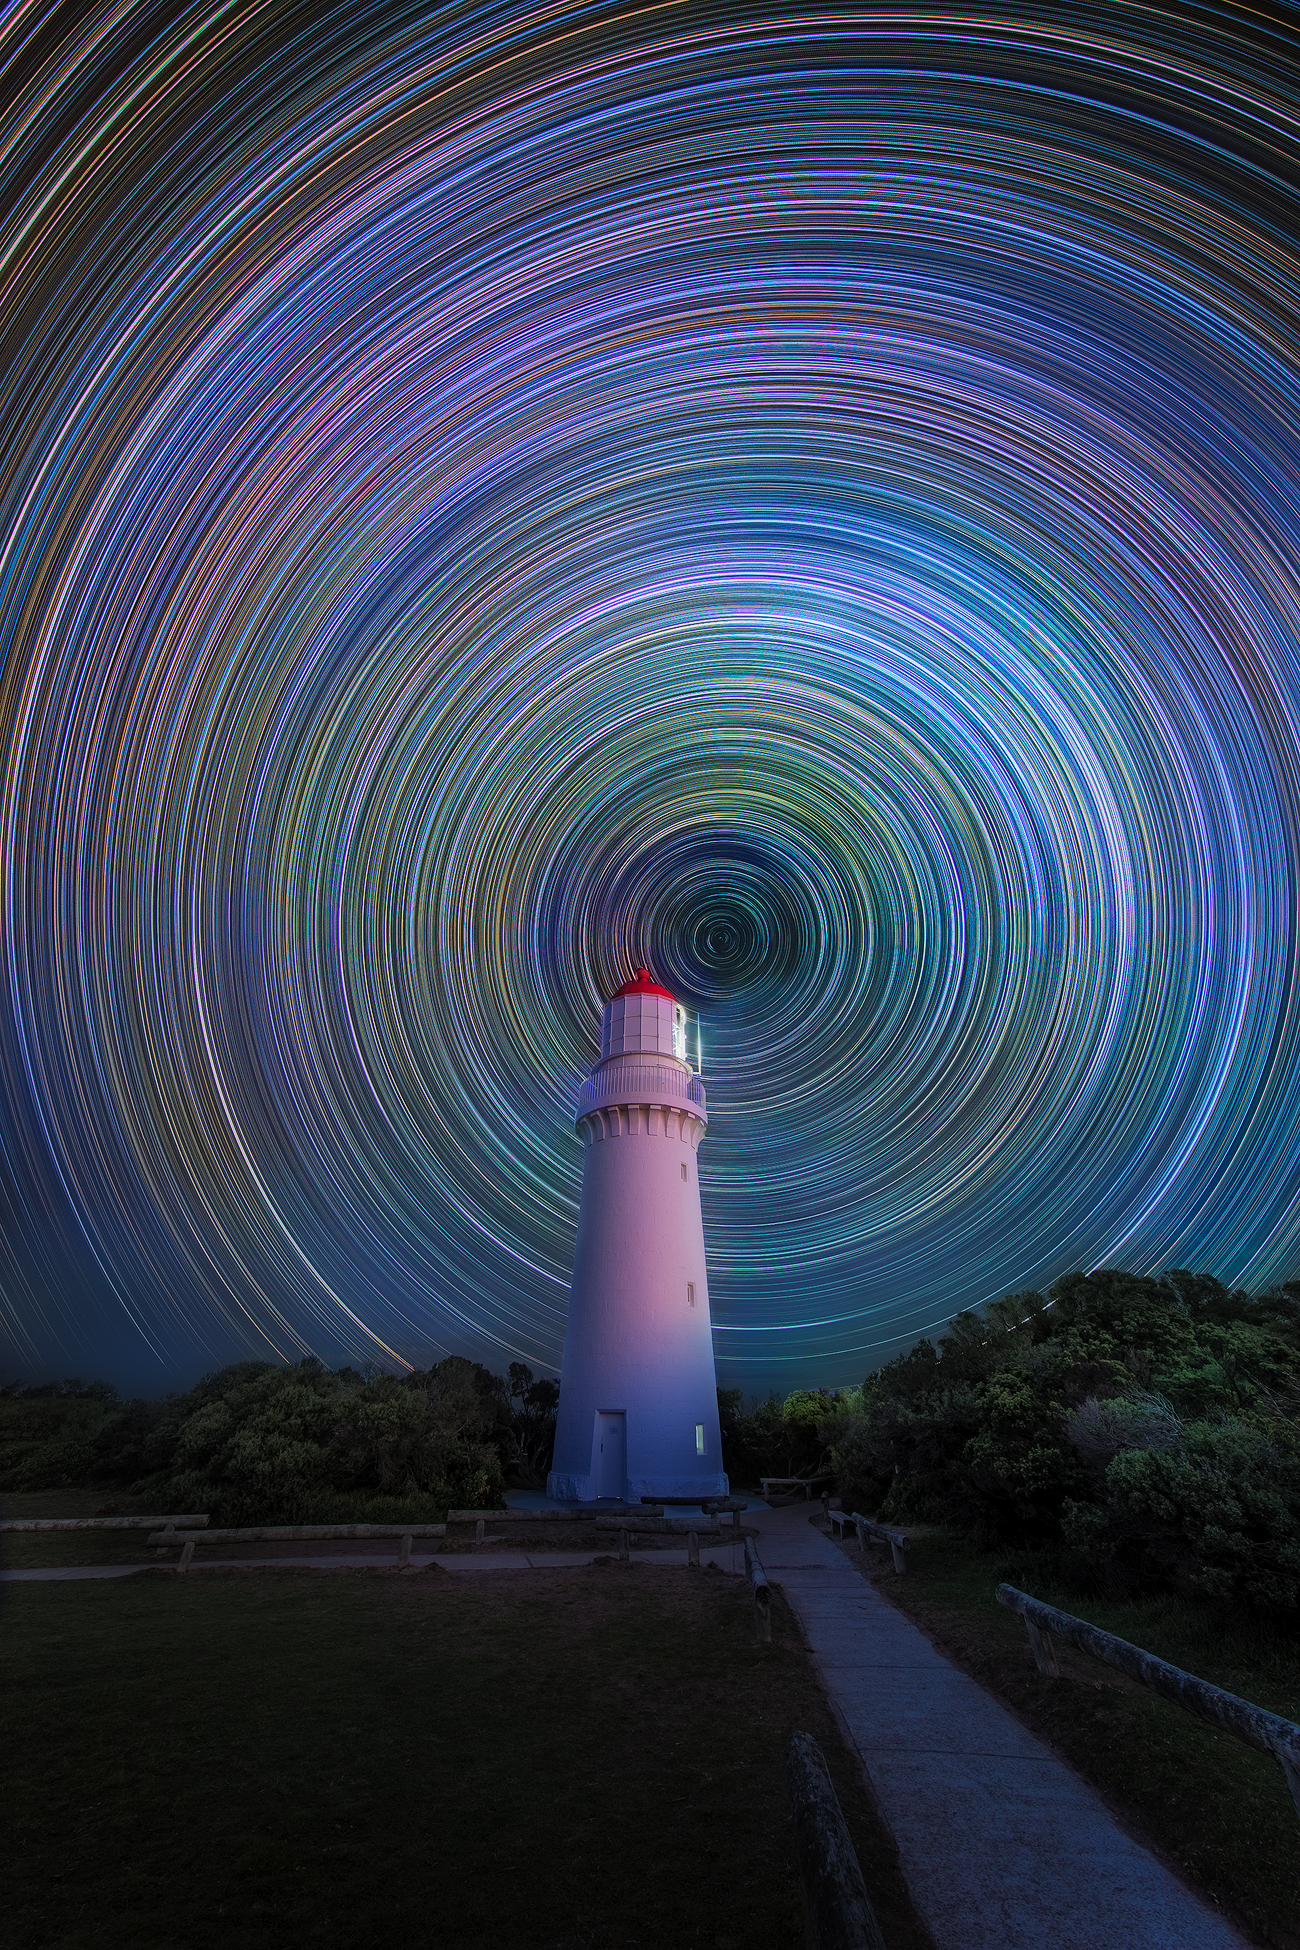 Start trail Photography Cape Schanck Lighthouse - Cape Schanck, Victoria, Australia | We Are Raw Photography Workshops